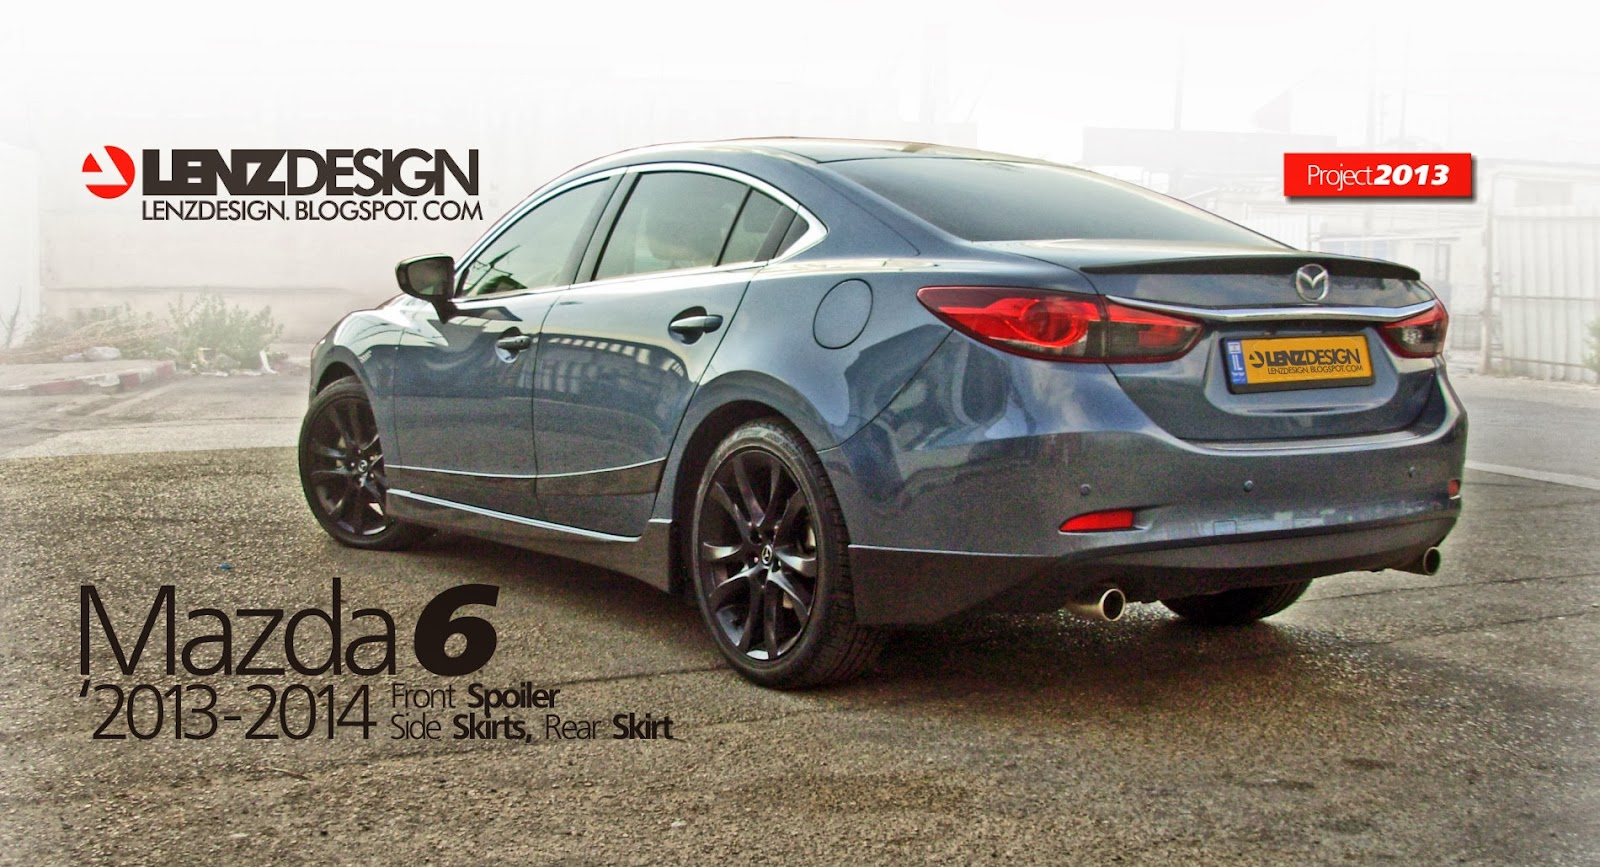 fresh body kit for gj mazda6 mazda 6 forums mazda 6. Black Bedroom Furniture Sets. Home Design Ideas